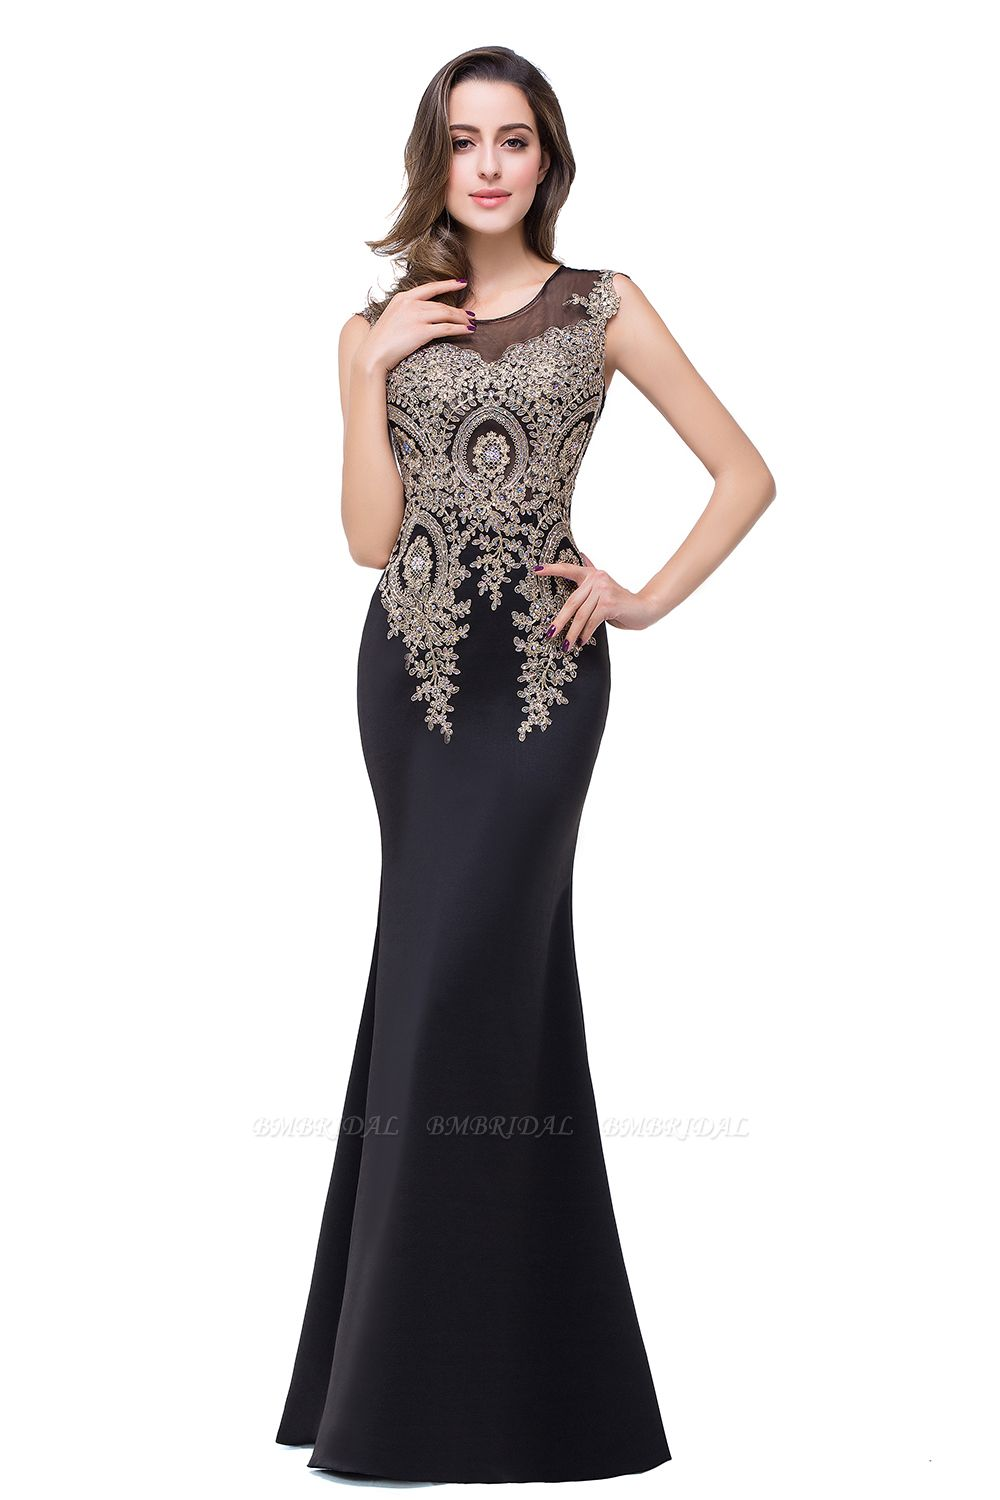 BMbridal Black Mermaid Long Prom Dress With Lace Appliques